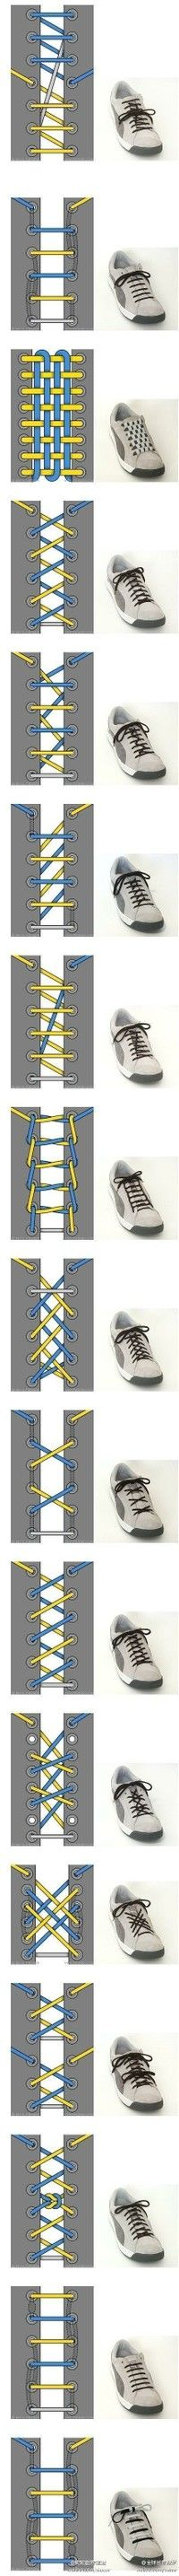 17 kinds of ways to tie shoelaces!!!